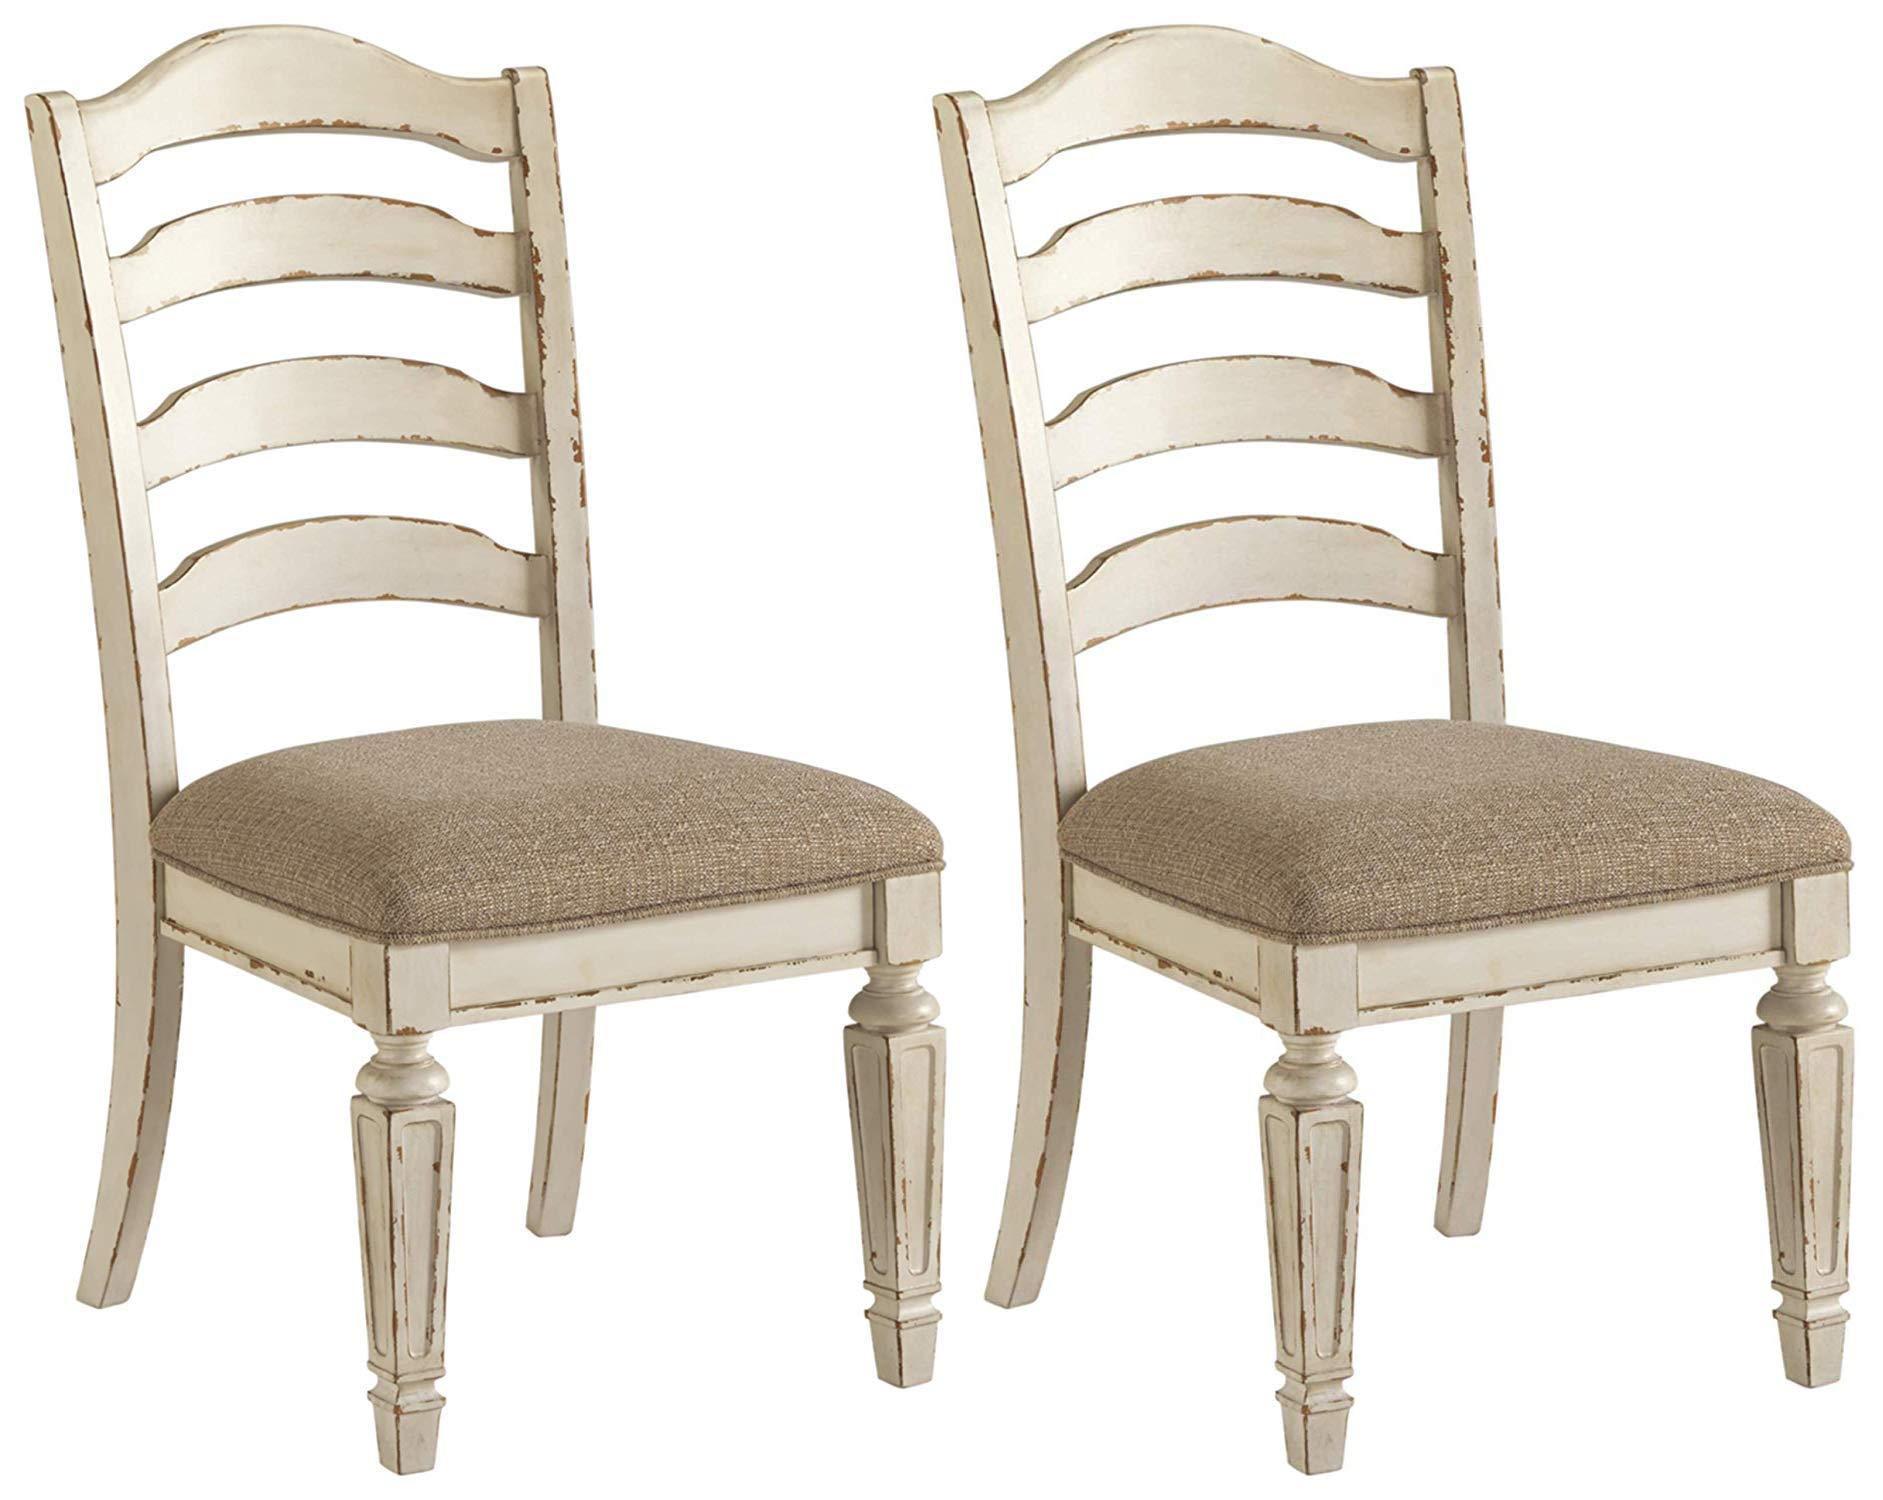 Signature Design By Ashley - Realyn Dining Upholstered Side Chair - Set of 2 - Casual Style - Chipped White by Signature Design by Ashley